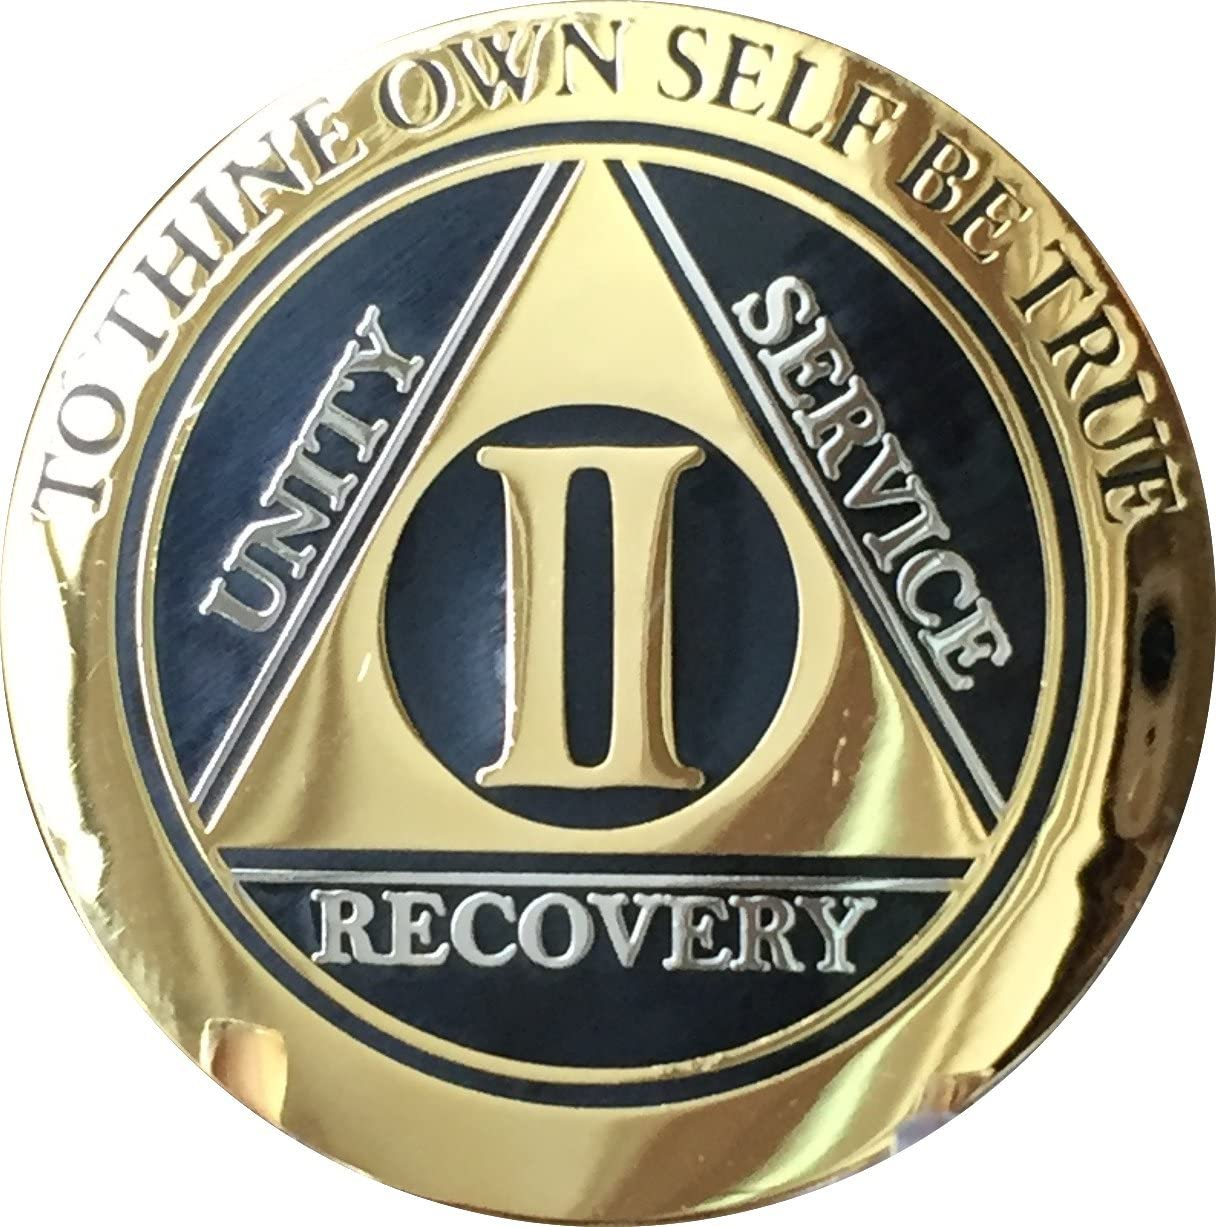 Token Black /& Gold Sobriety Chip Coin Alcoholics Anonymous Blue Recovery Line 42 Year AA Medallion